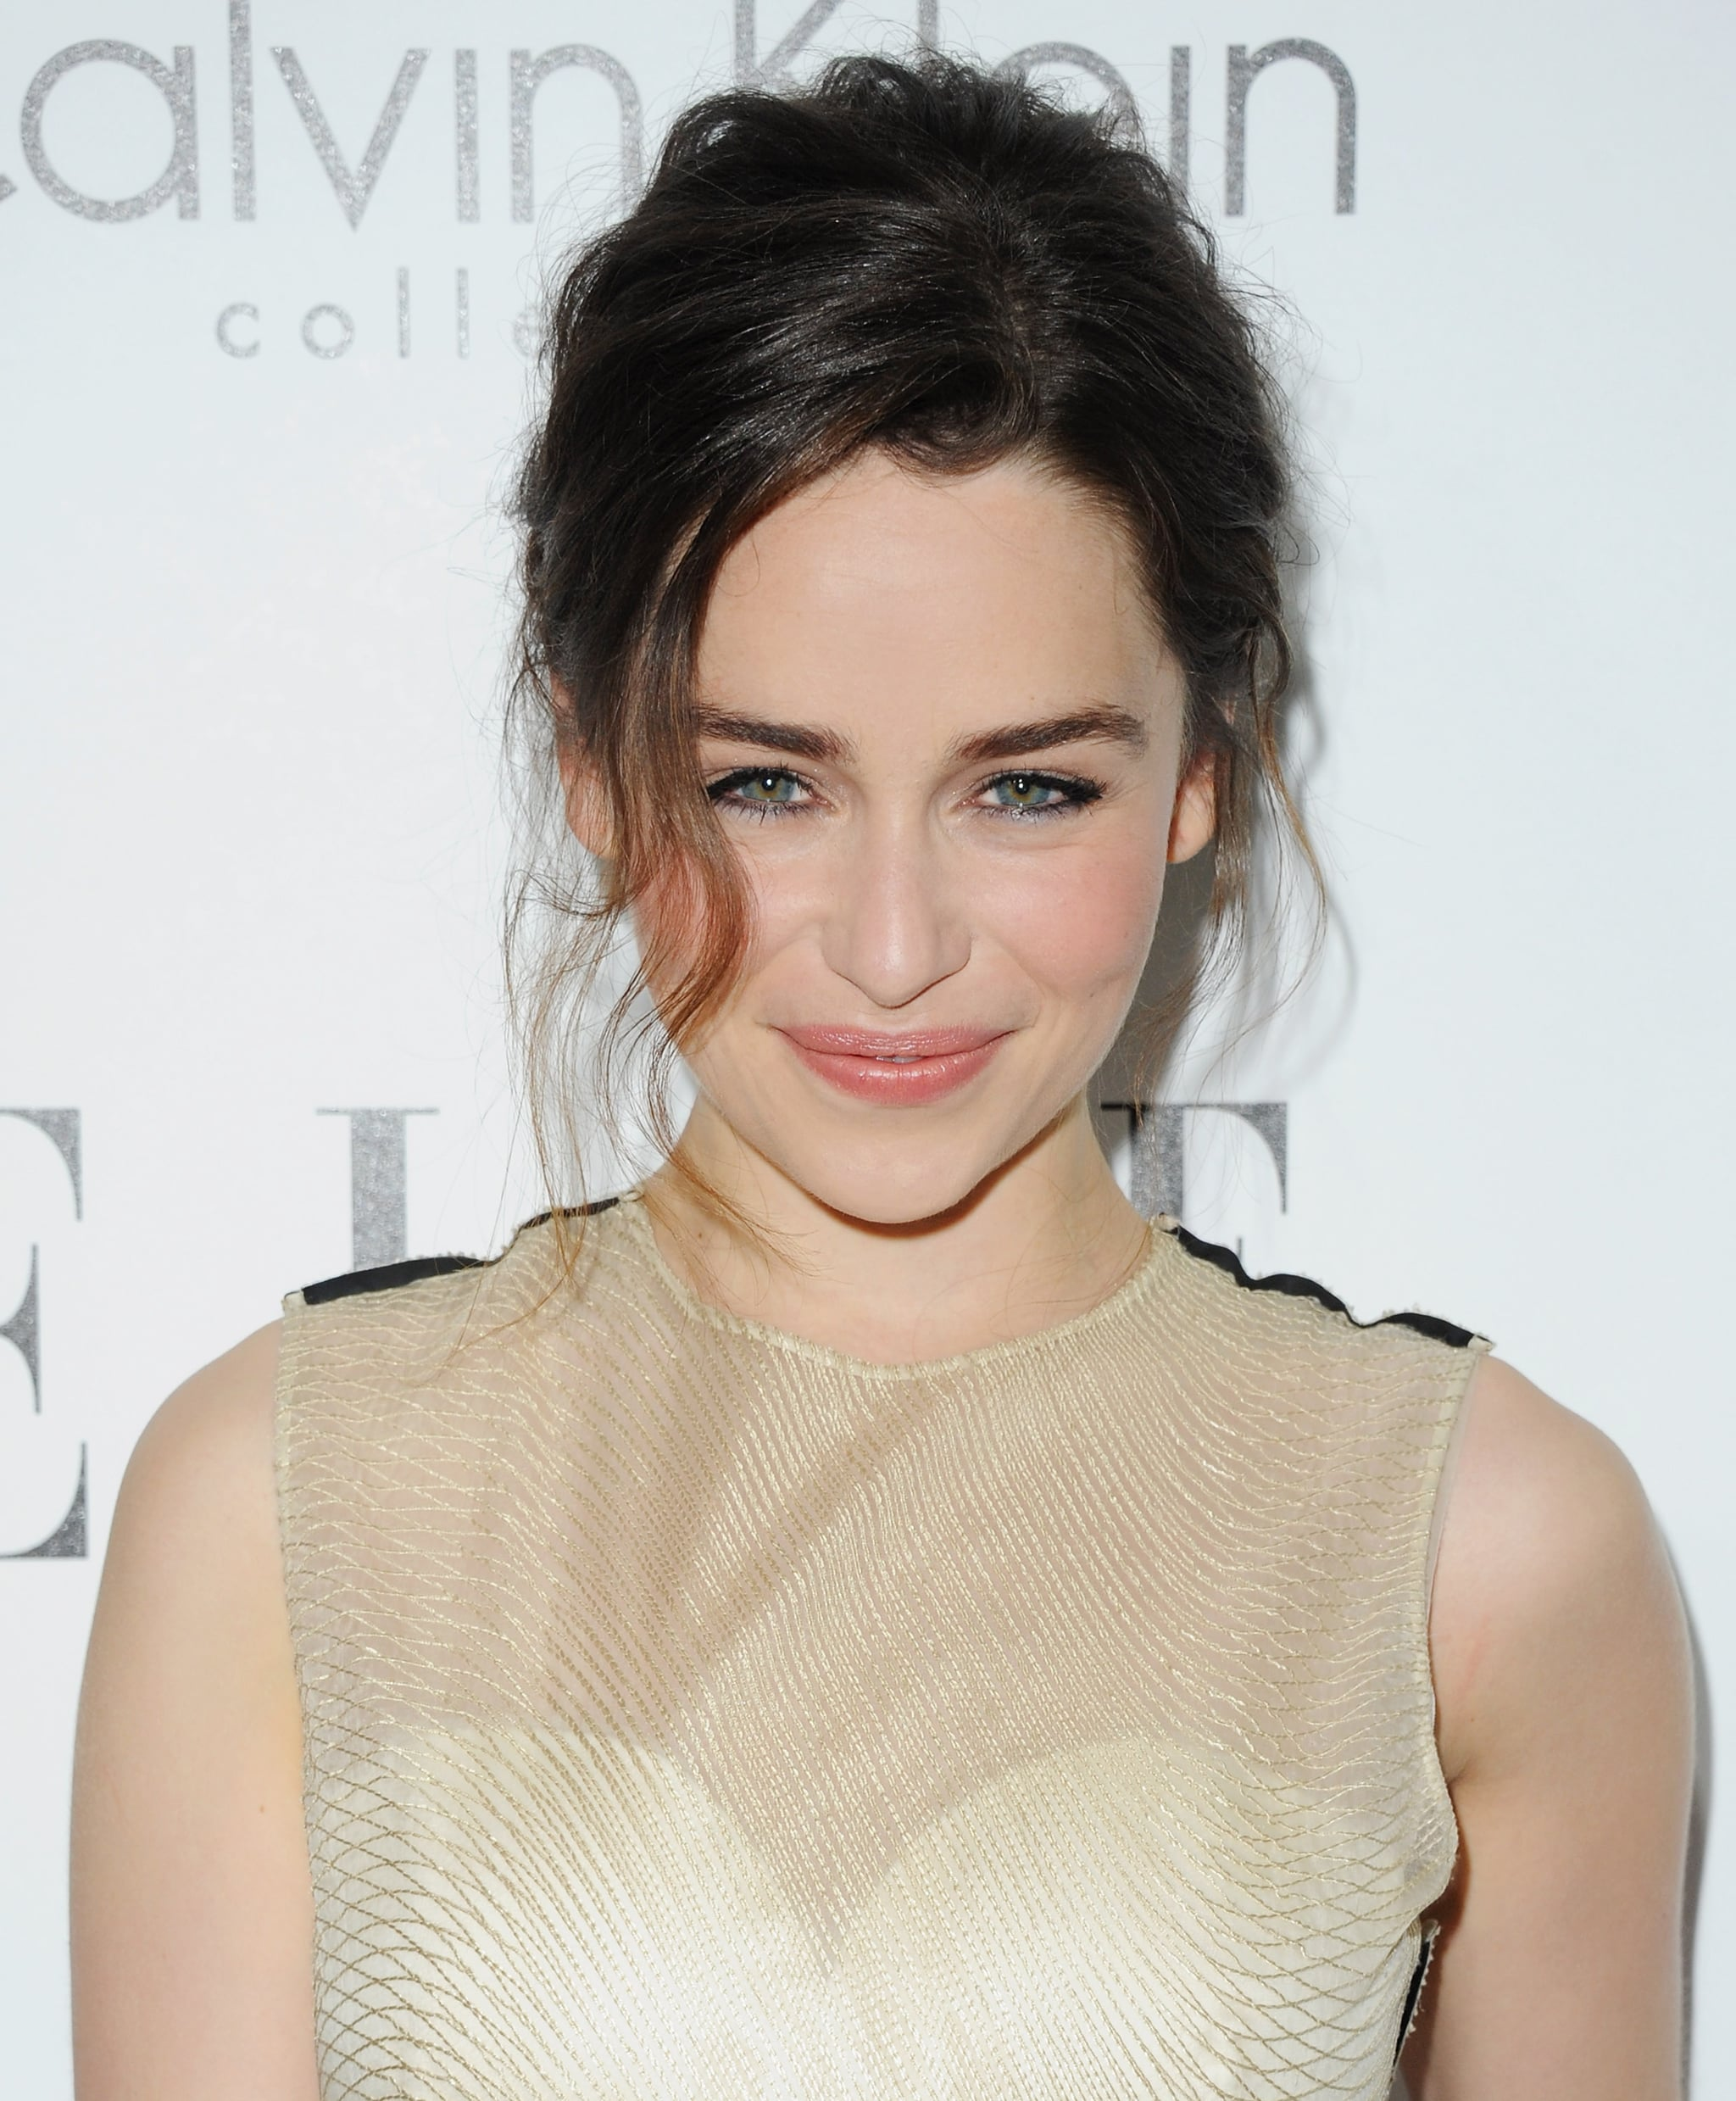 Game of Thrones actress Emilia Clarke turned to peachy makeup tones and a tousled updo.